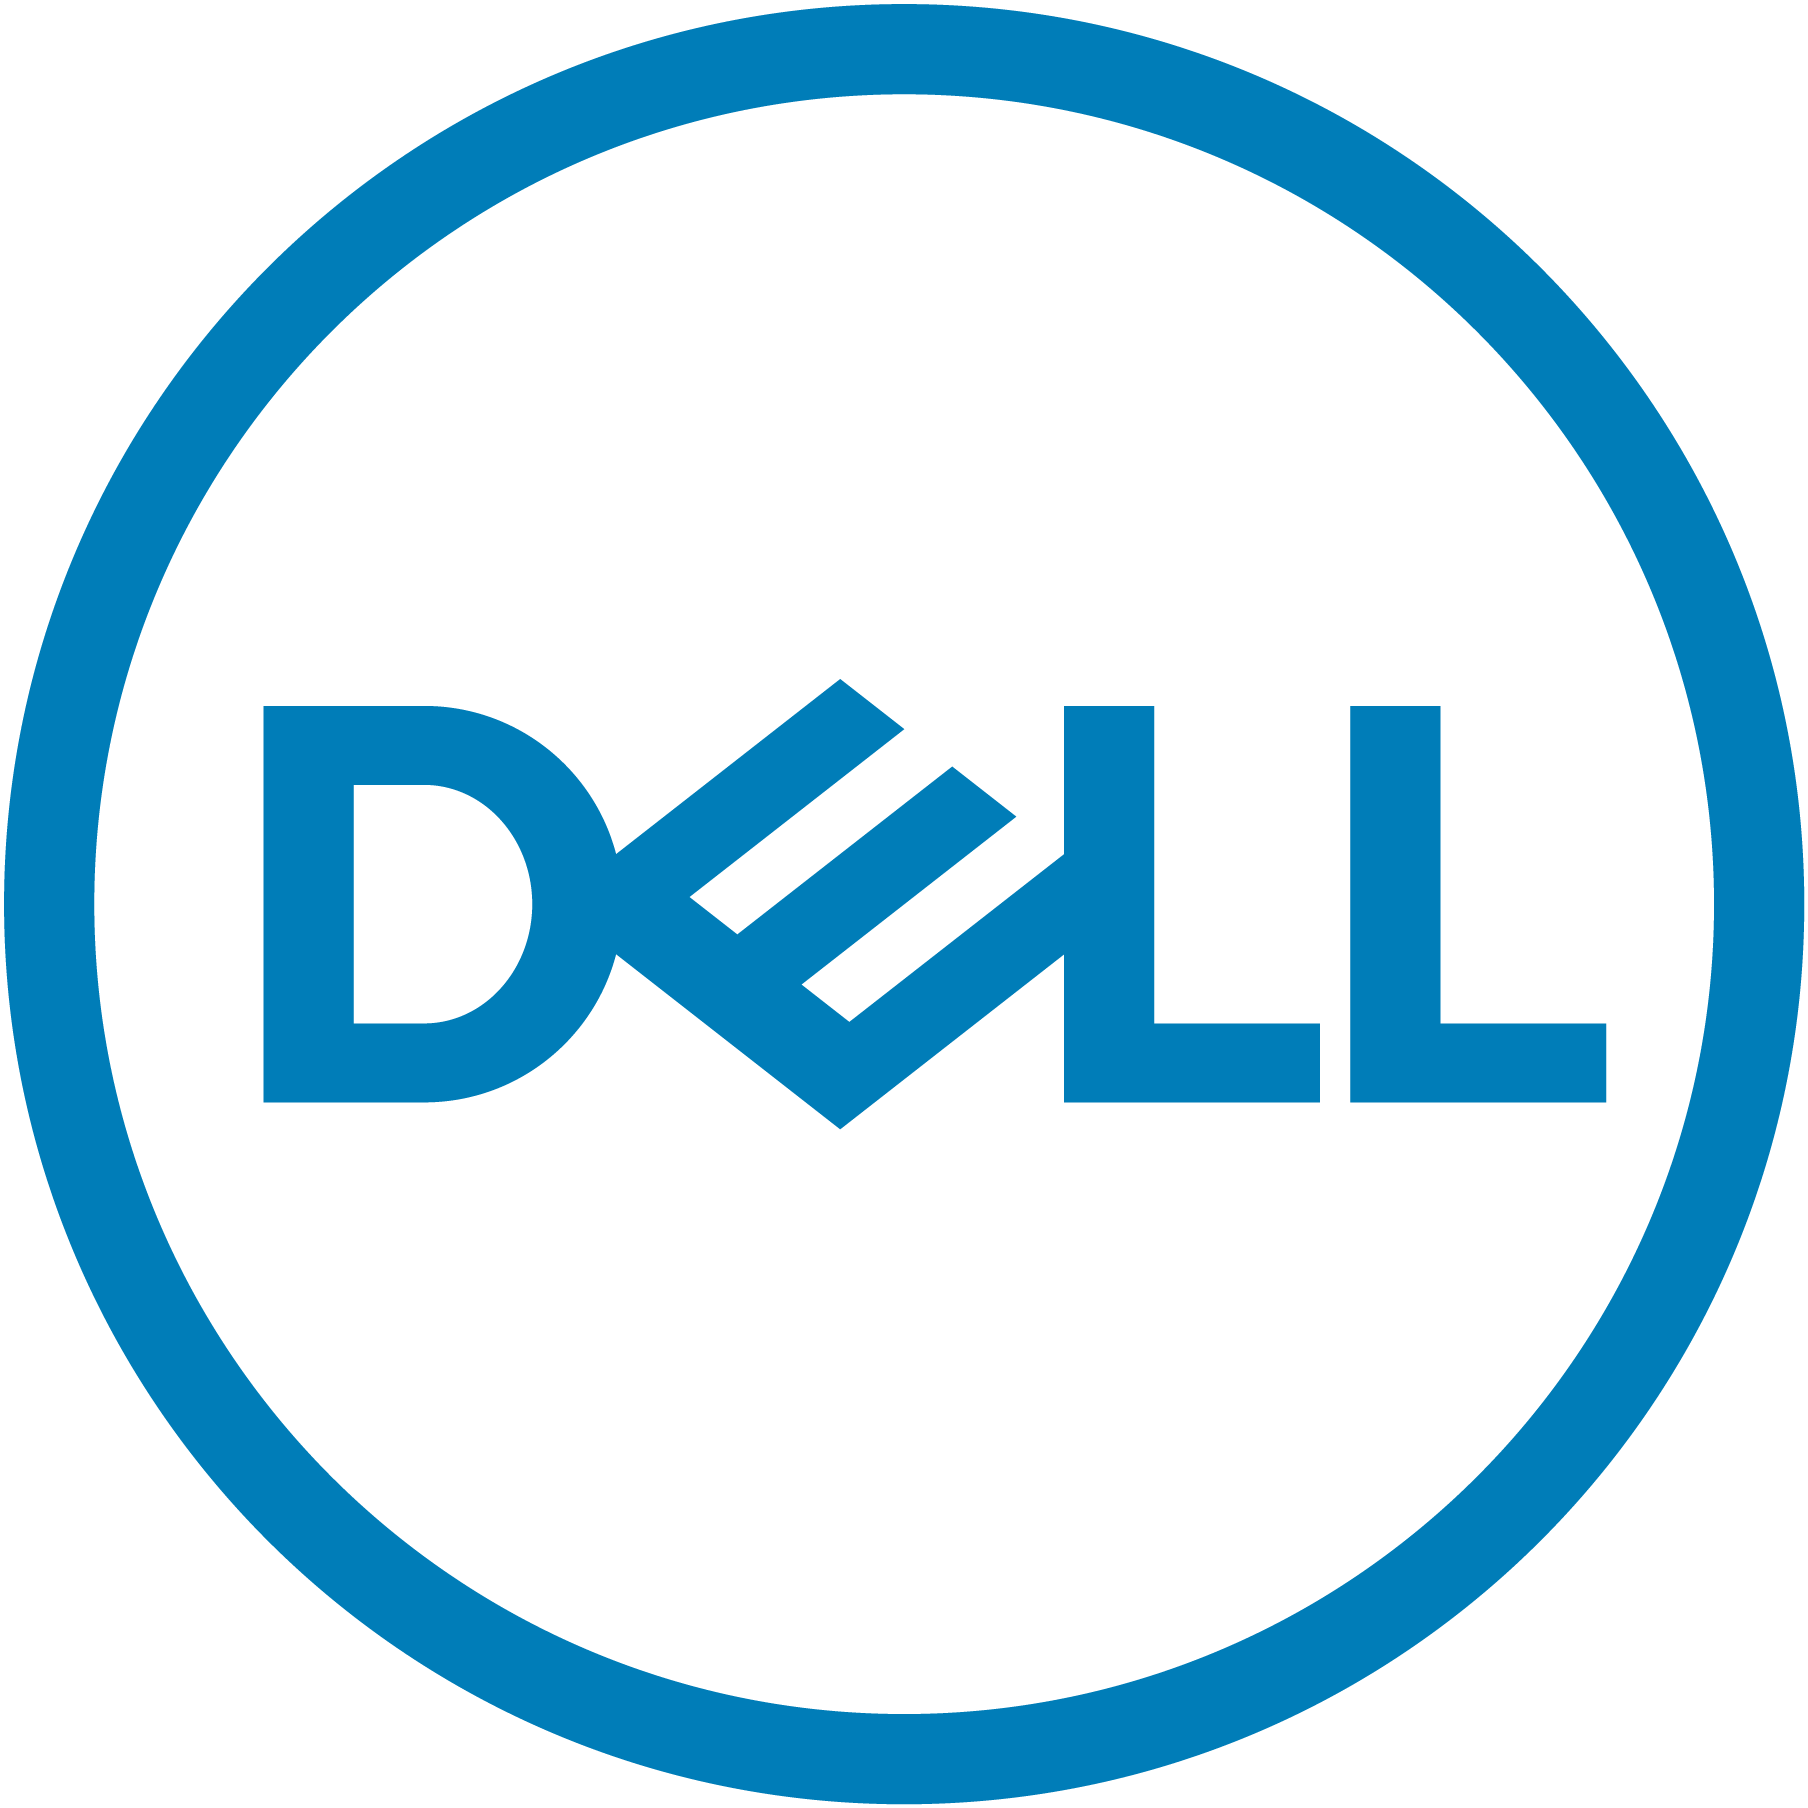 dell footer logo